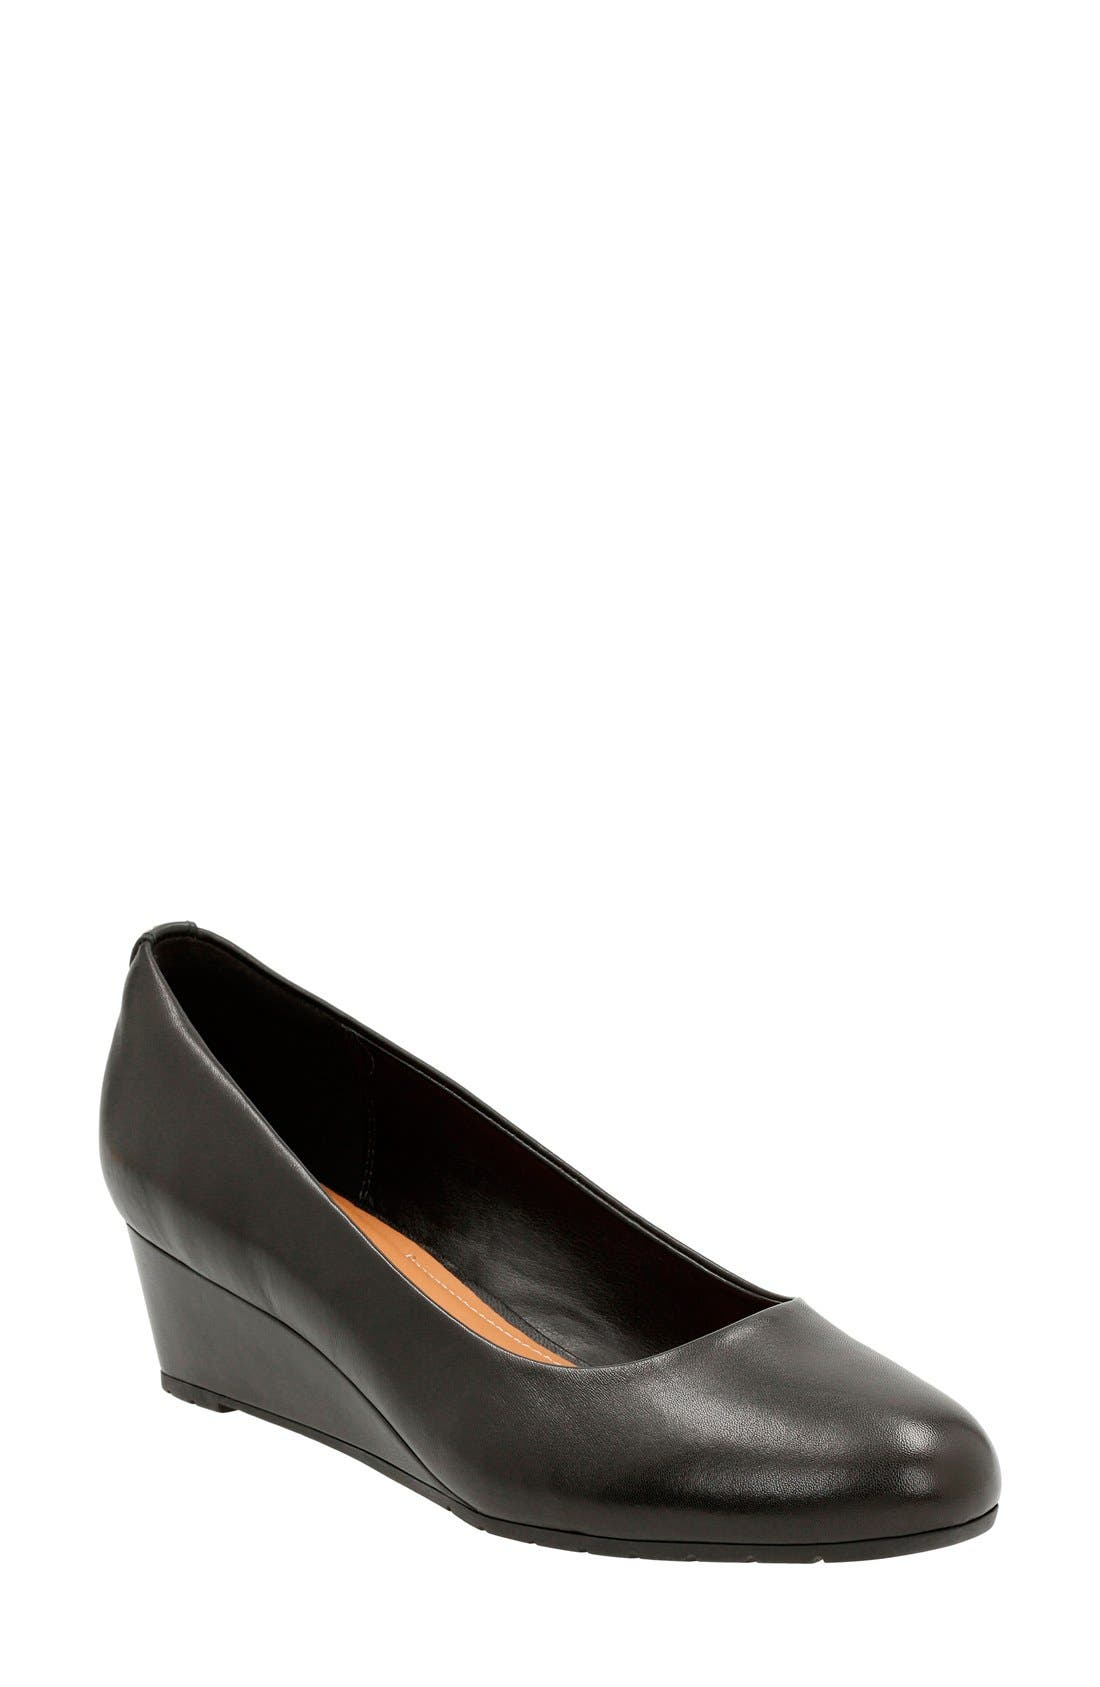 'Vendra Bloom' Wedge Pump,                         Main,                         color, Black Leather